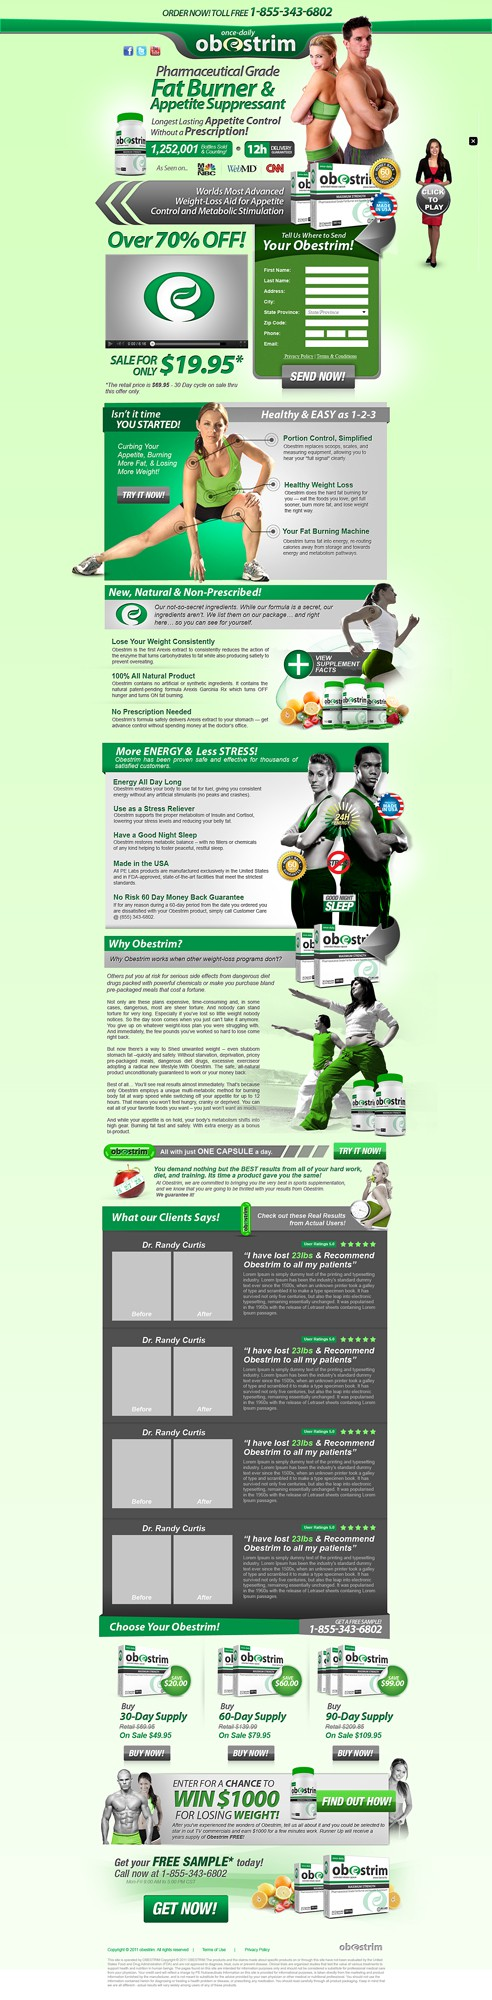 Landing Page for Rapidweightloss.com